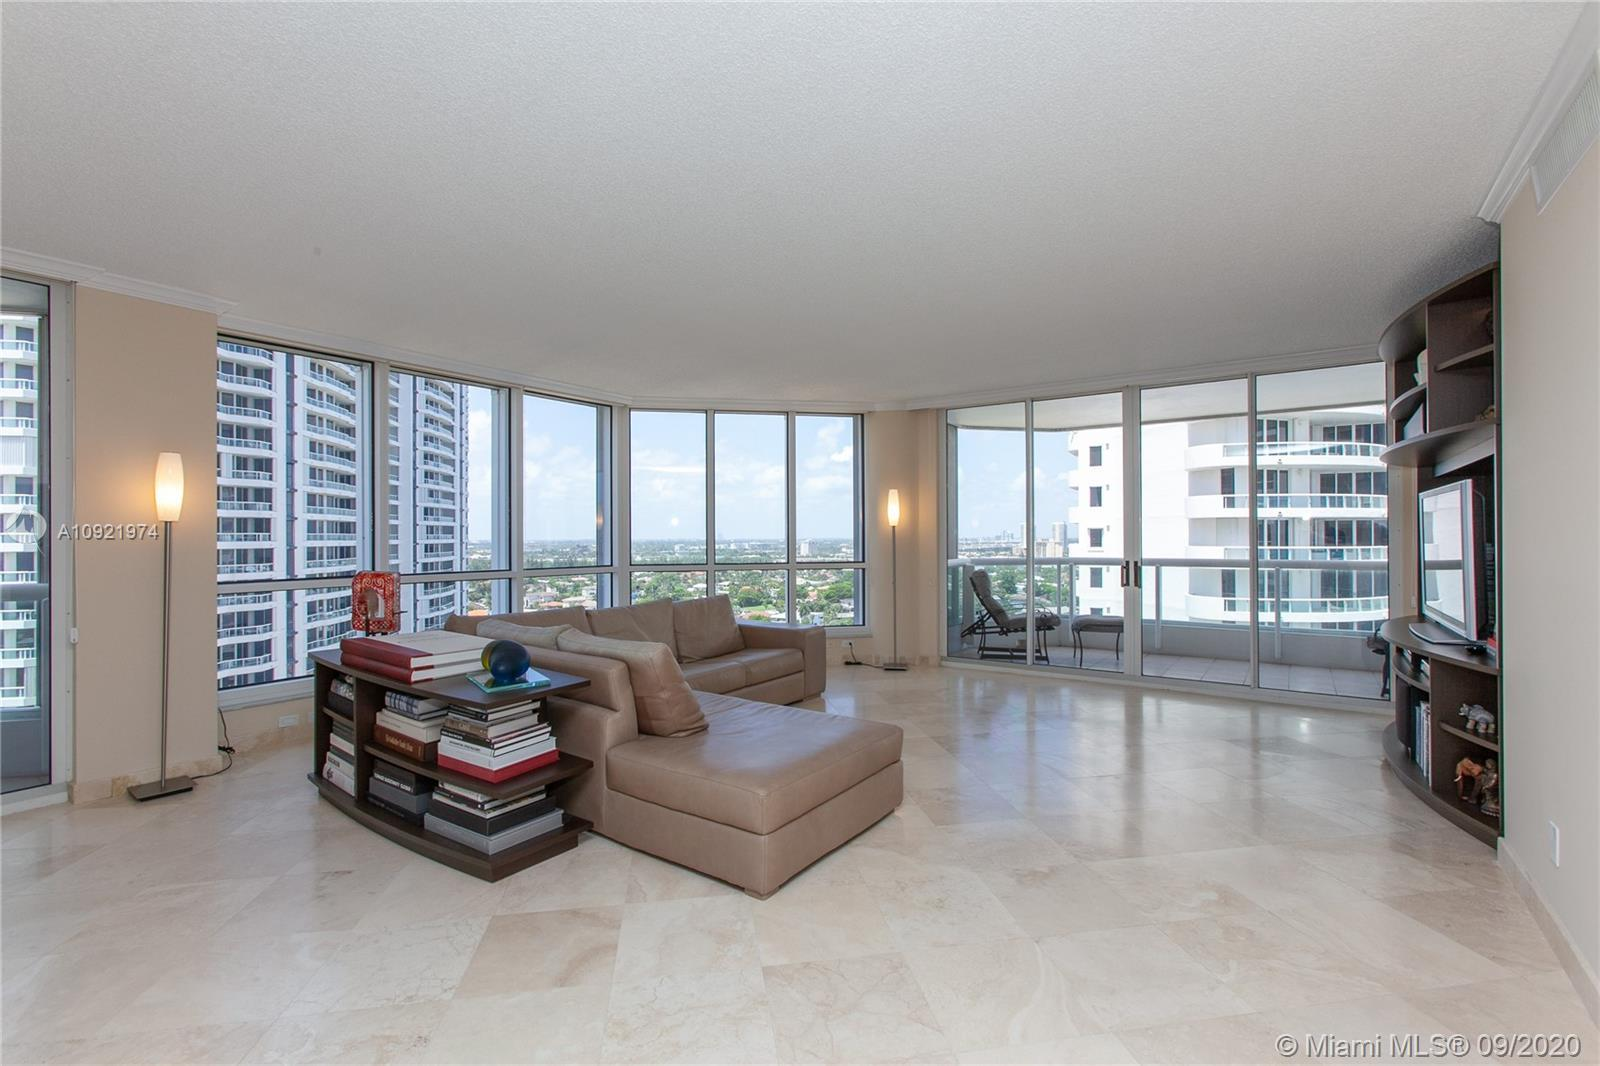 THIS IS THE ONE! Be wowed by Floor to Ceiling 280 degree windows with panoramic water views of the I